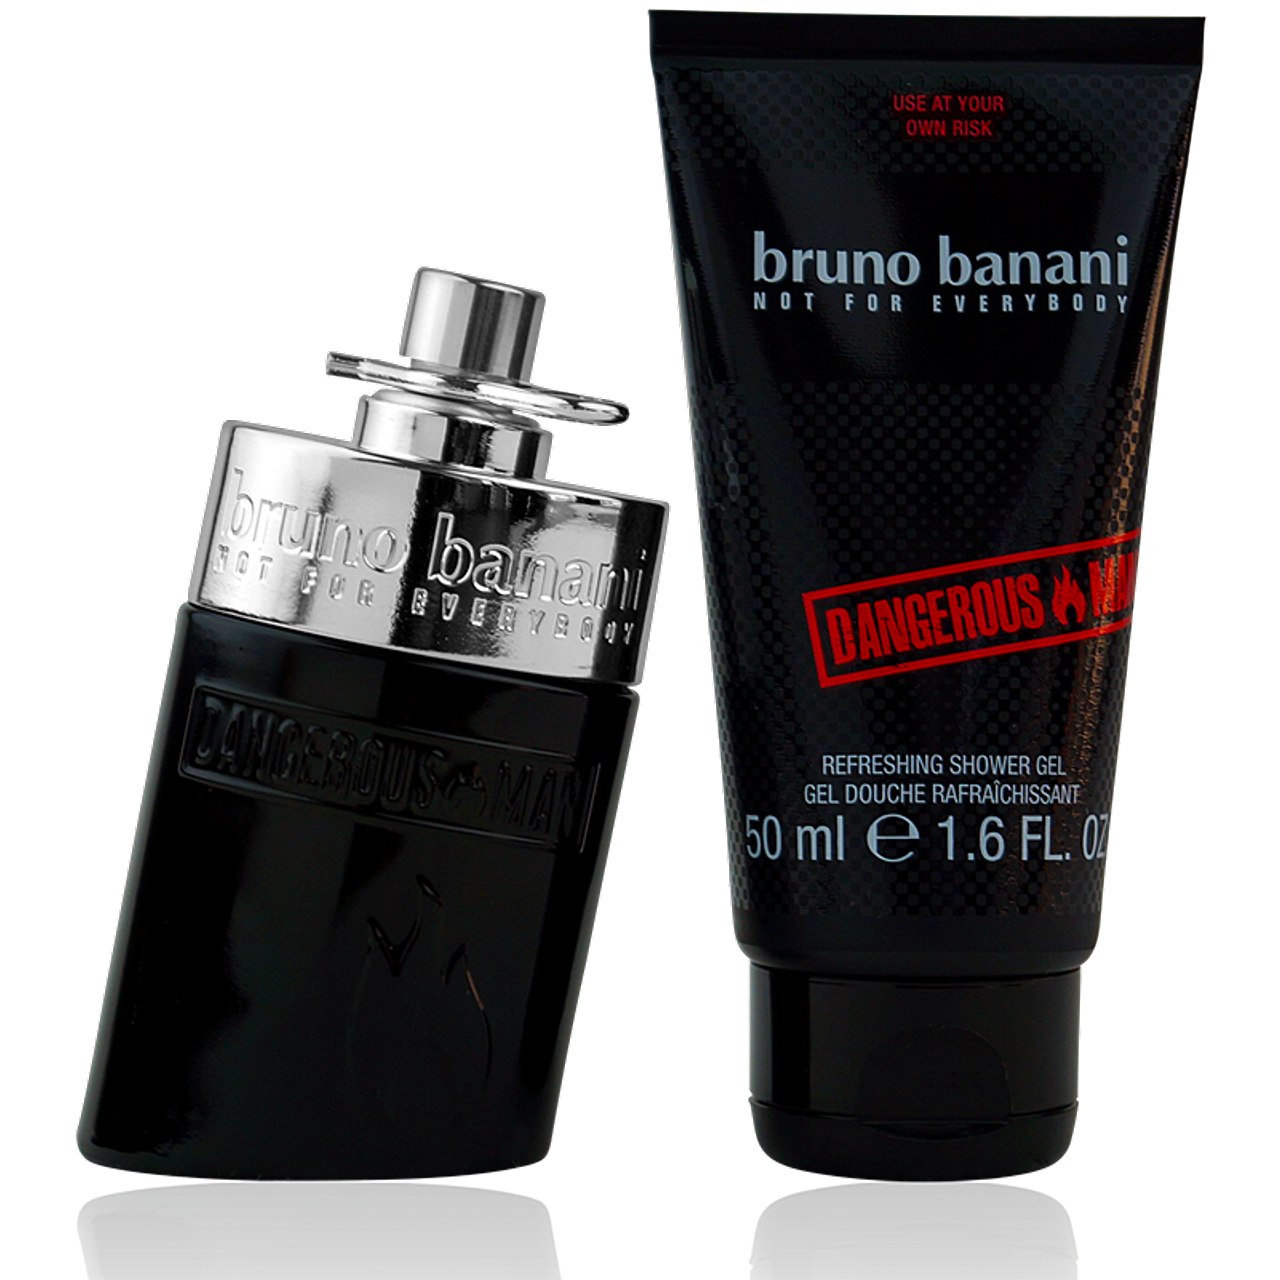 Bruno Banani Dangerous Man EdT 30ml + Shower Gel 50ml